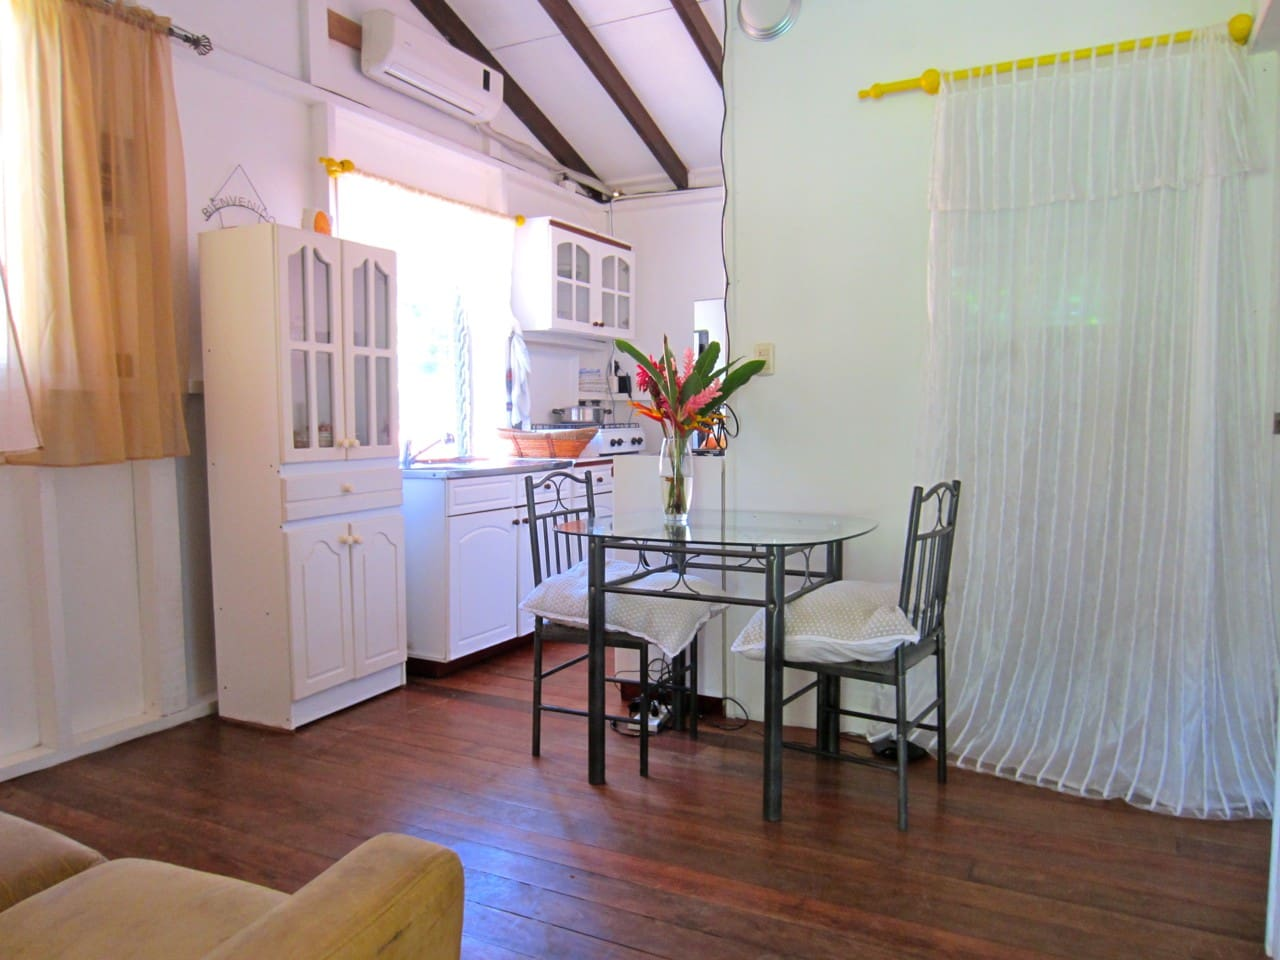 Living area with kitchen and dining area